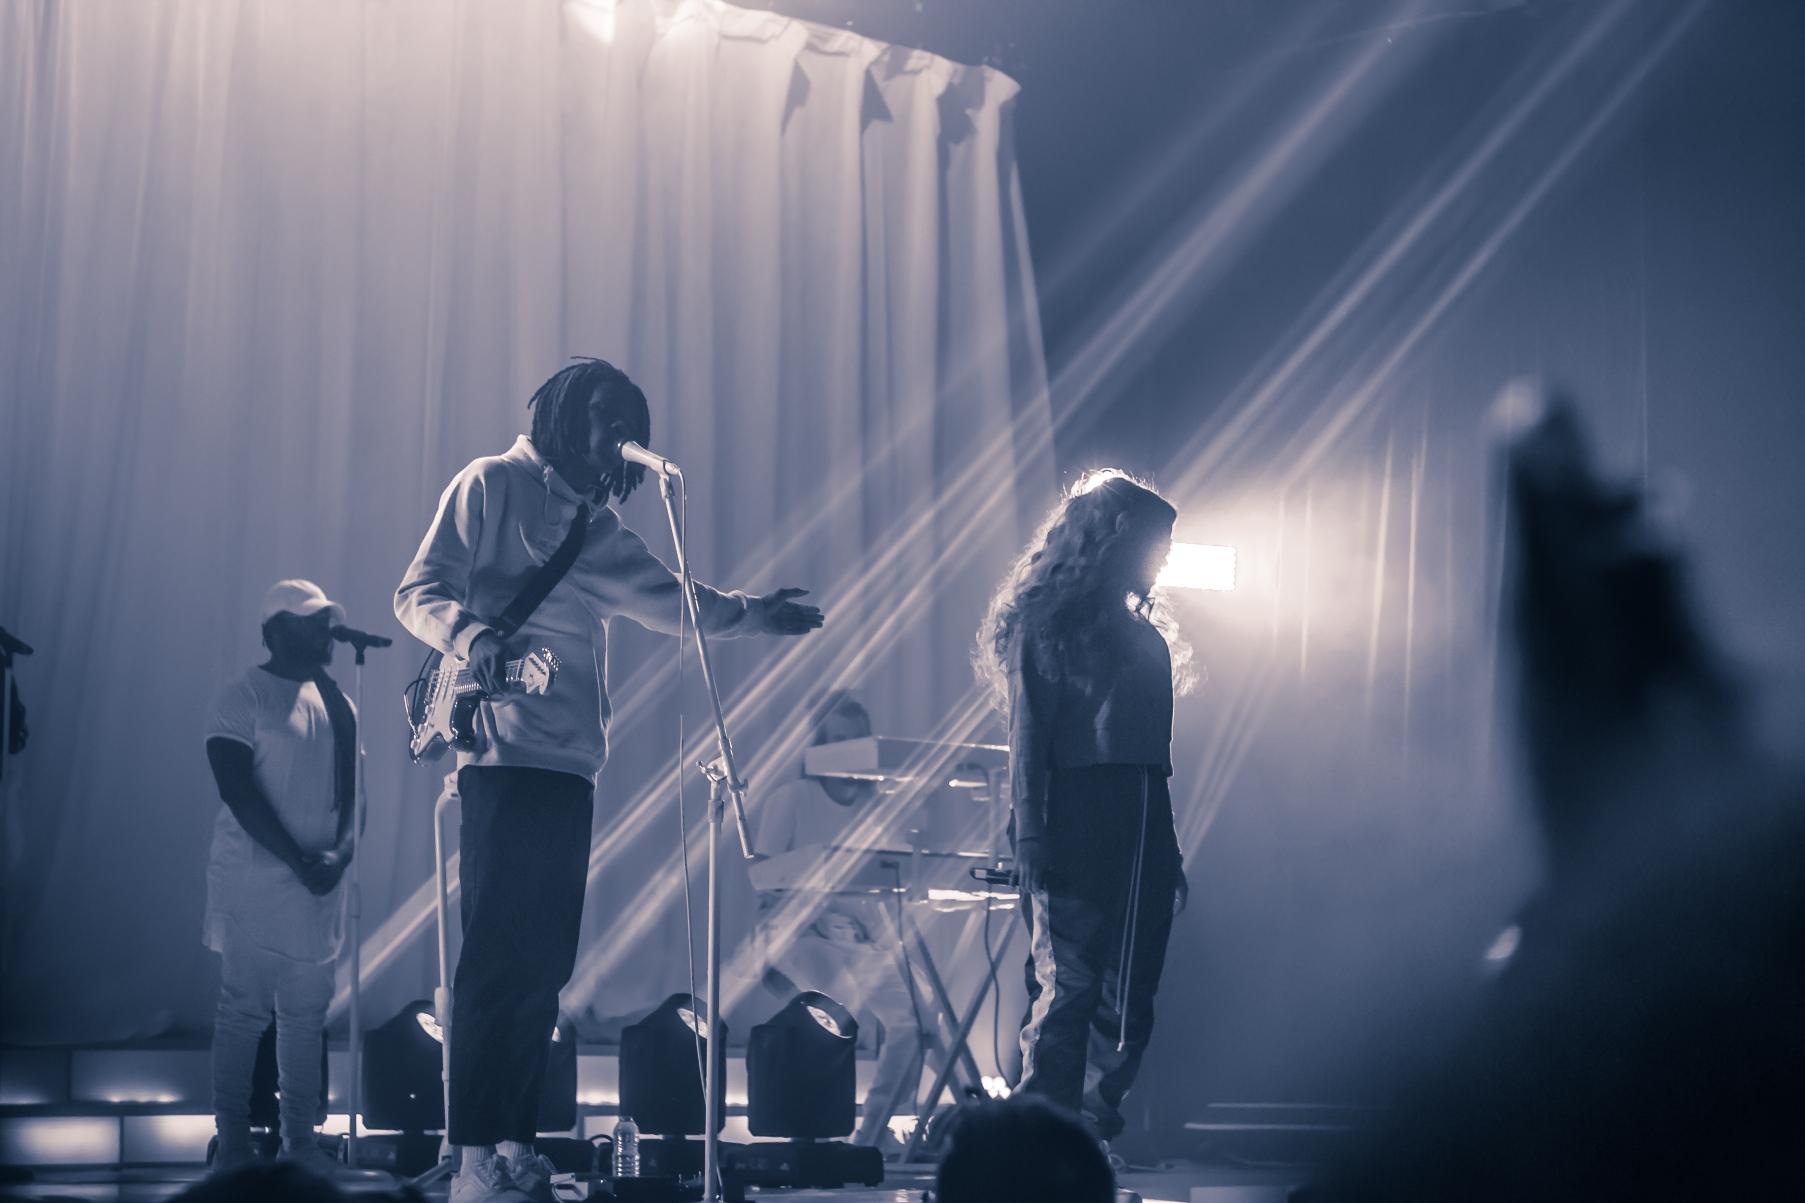 Daniel Caesar and H.E.R at Danforth Music Hall taken by Ziyaad Haniff